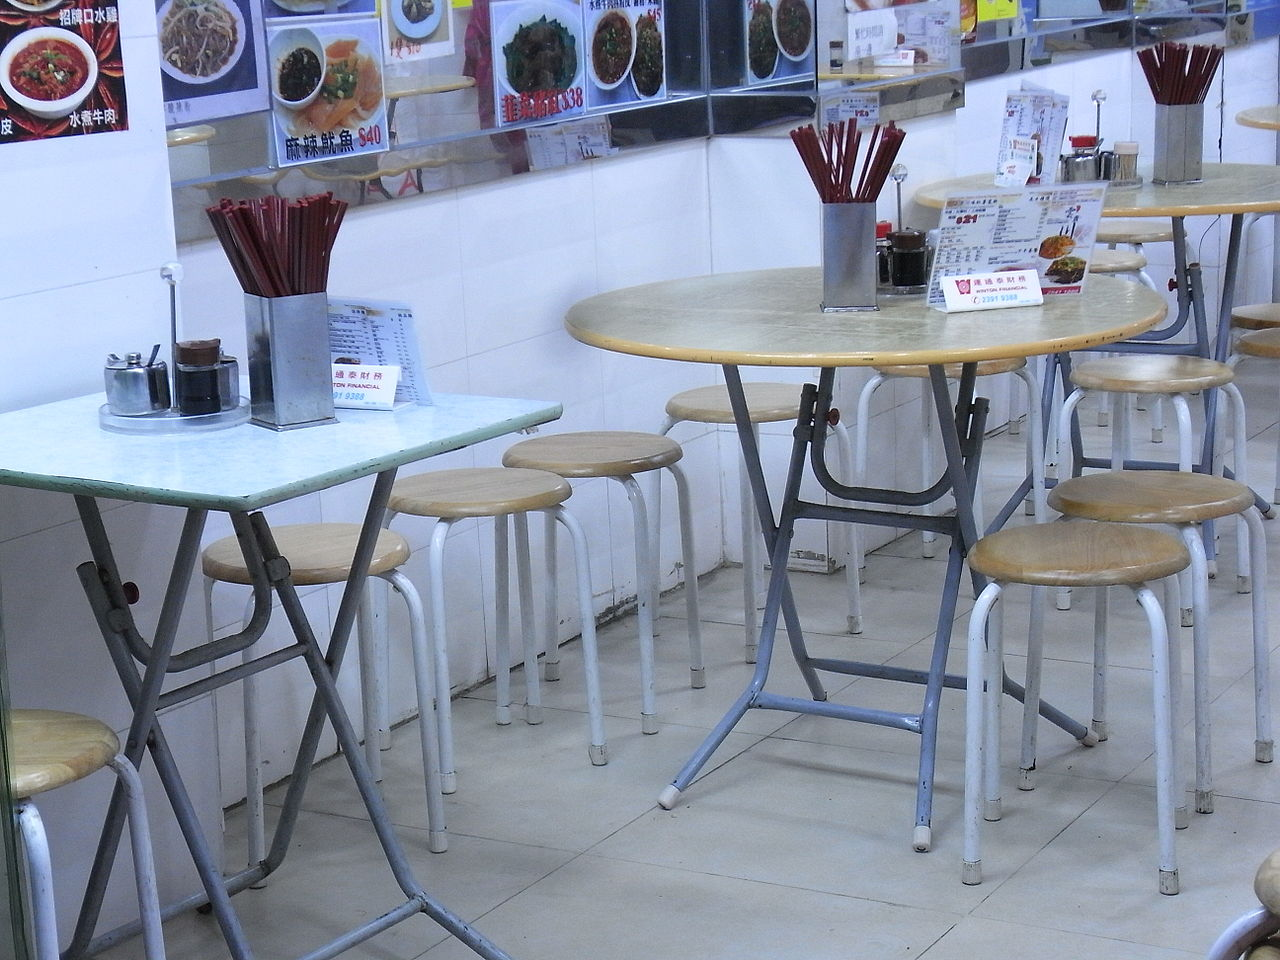 Used tables and chairs for restaurant - File Hk Sheung Wan Evening Jervois Street Restaurant Interior Furniture Tables Aug 2012 Jpg